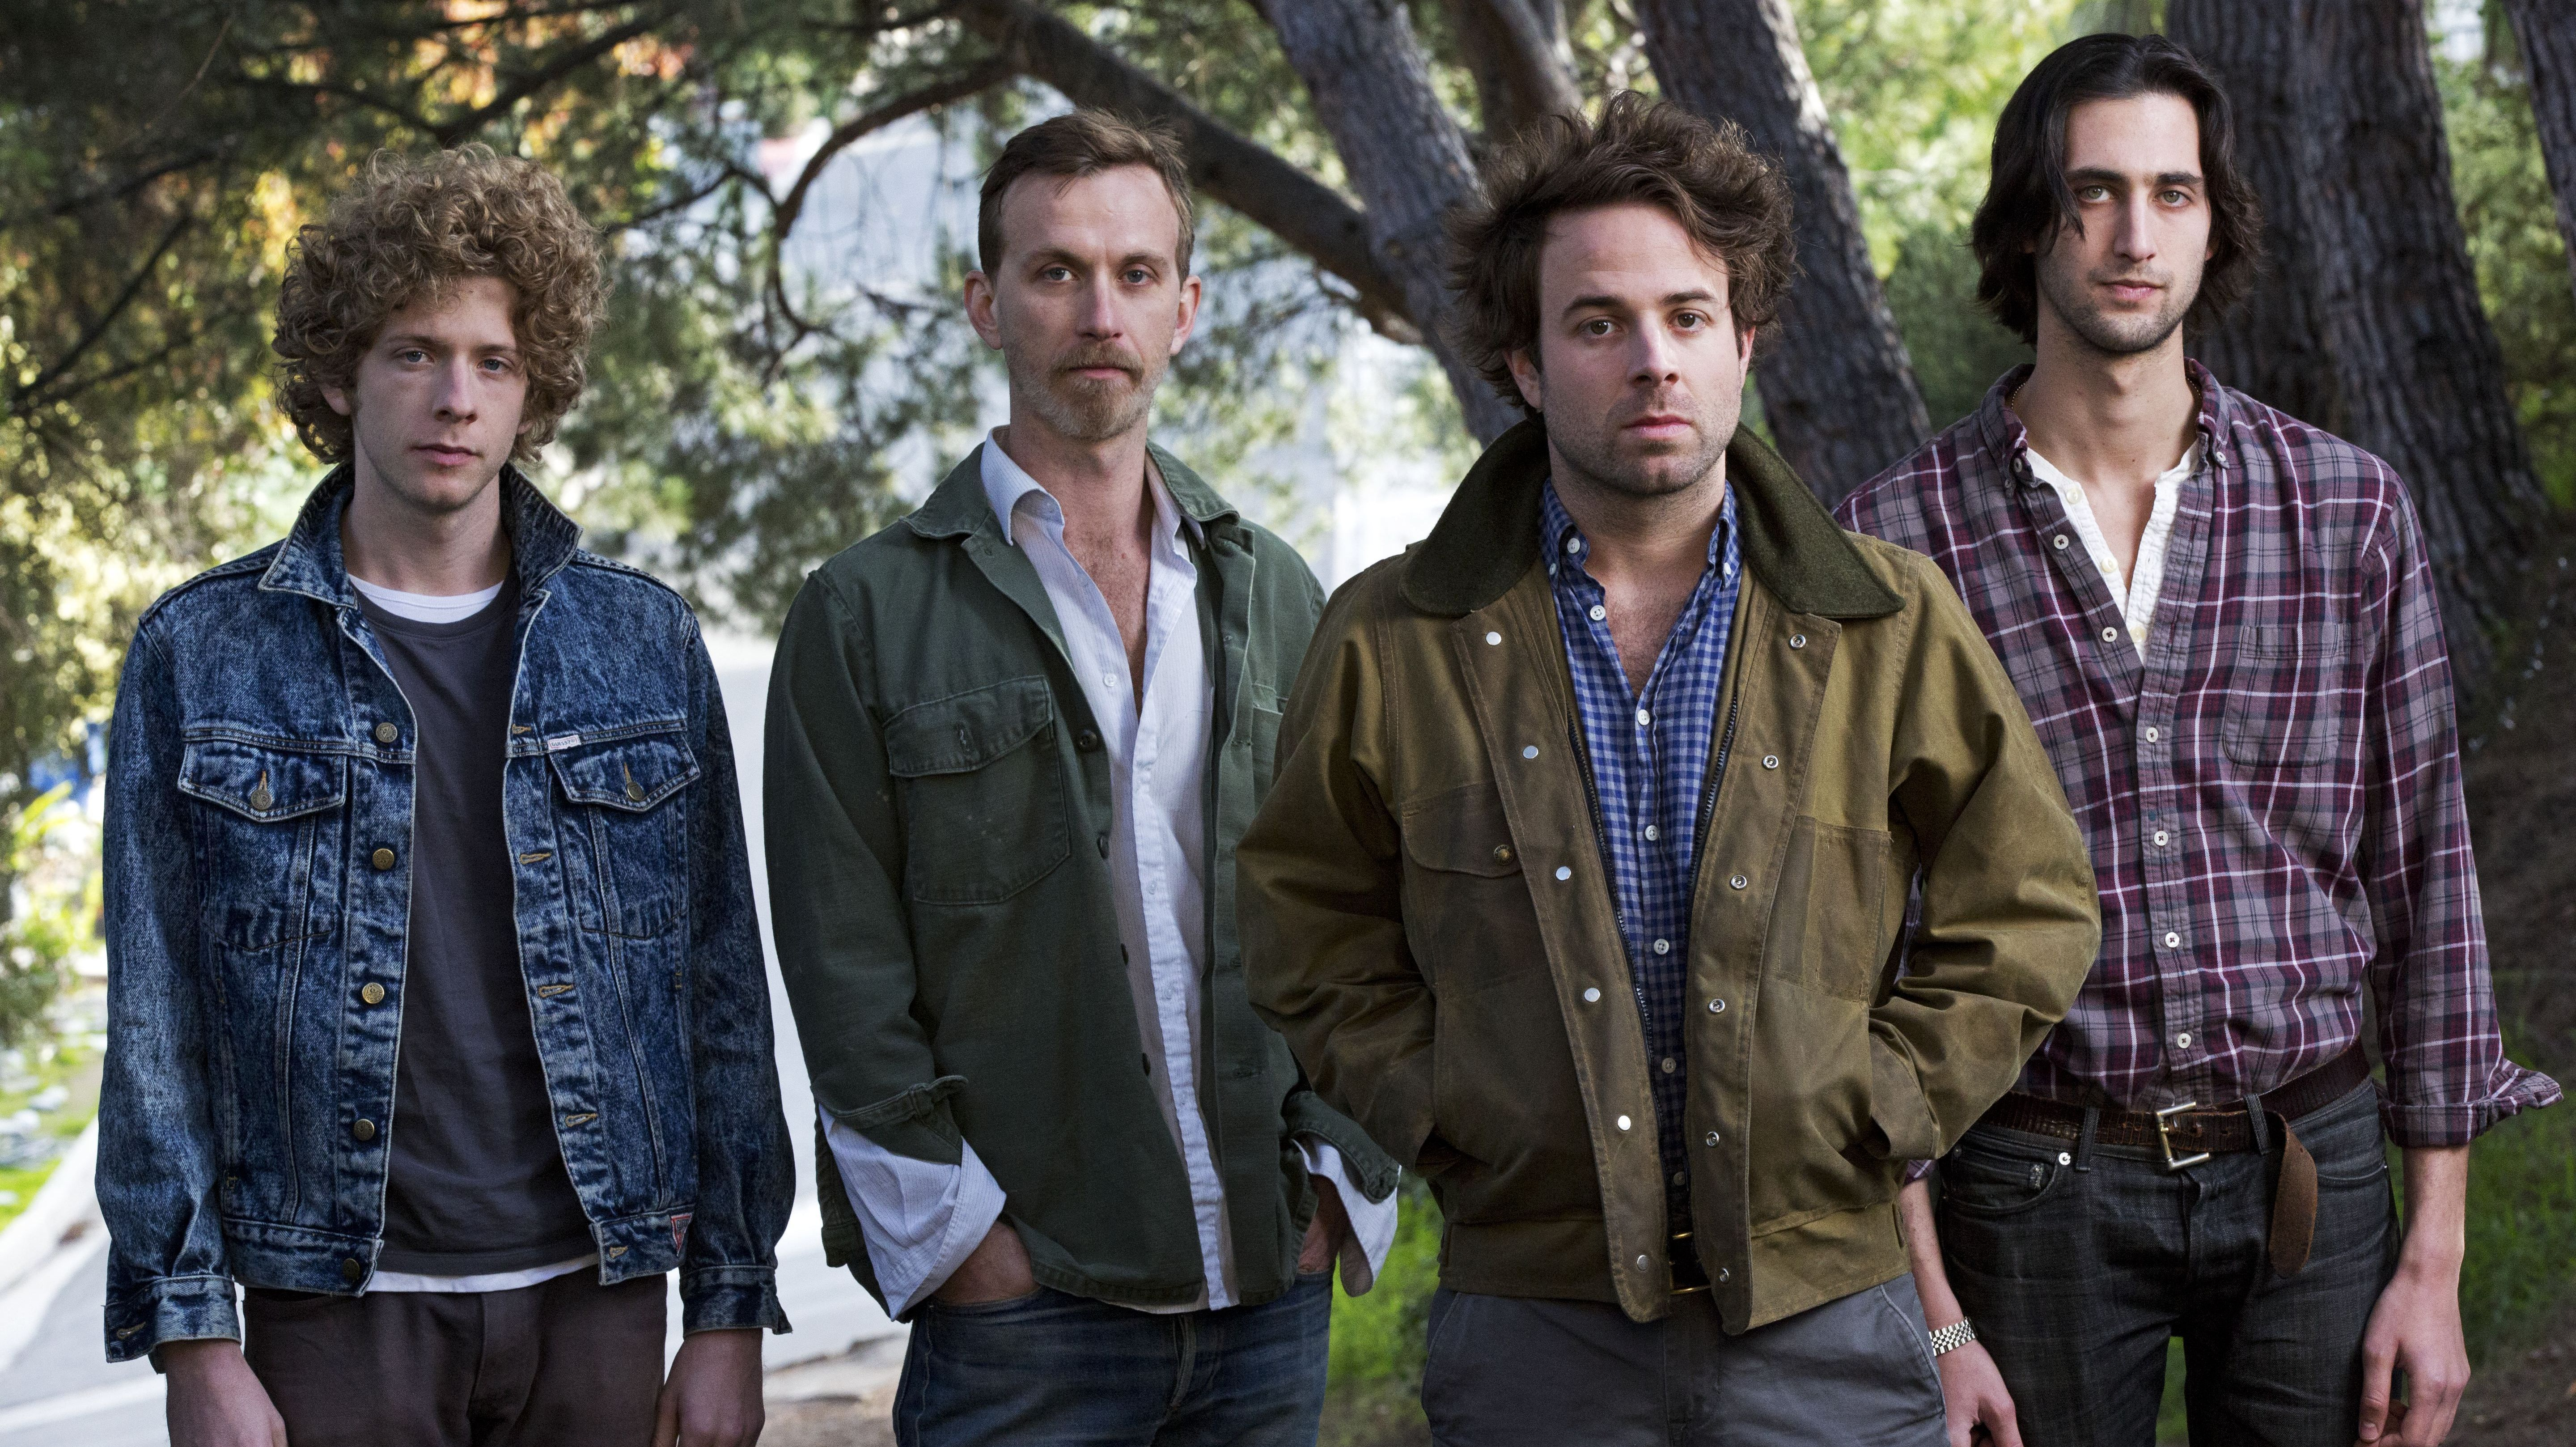 Dawes' Story Gets A Fine New Chapter